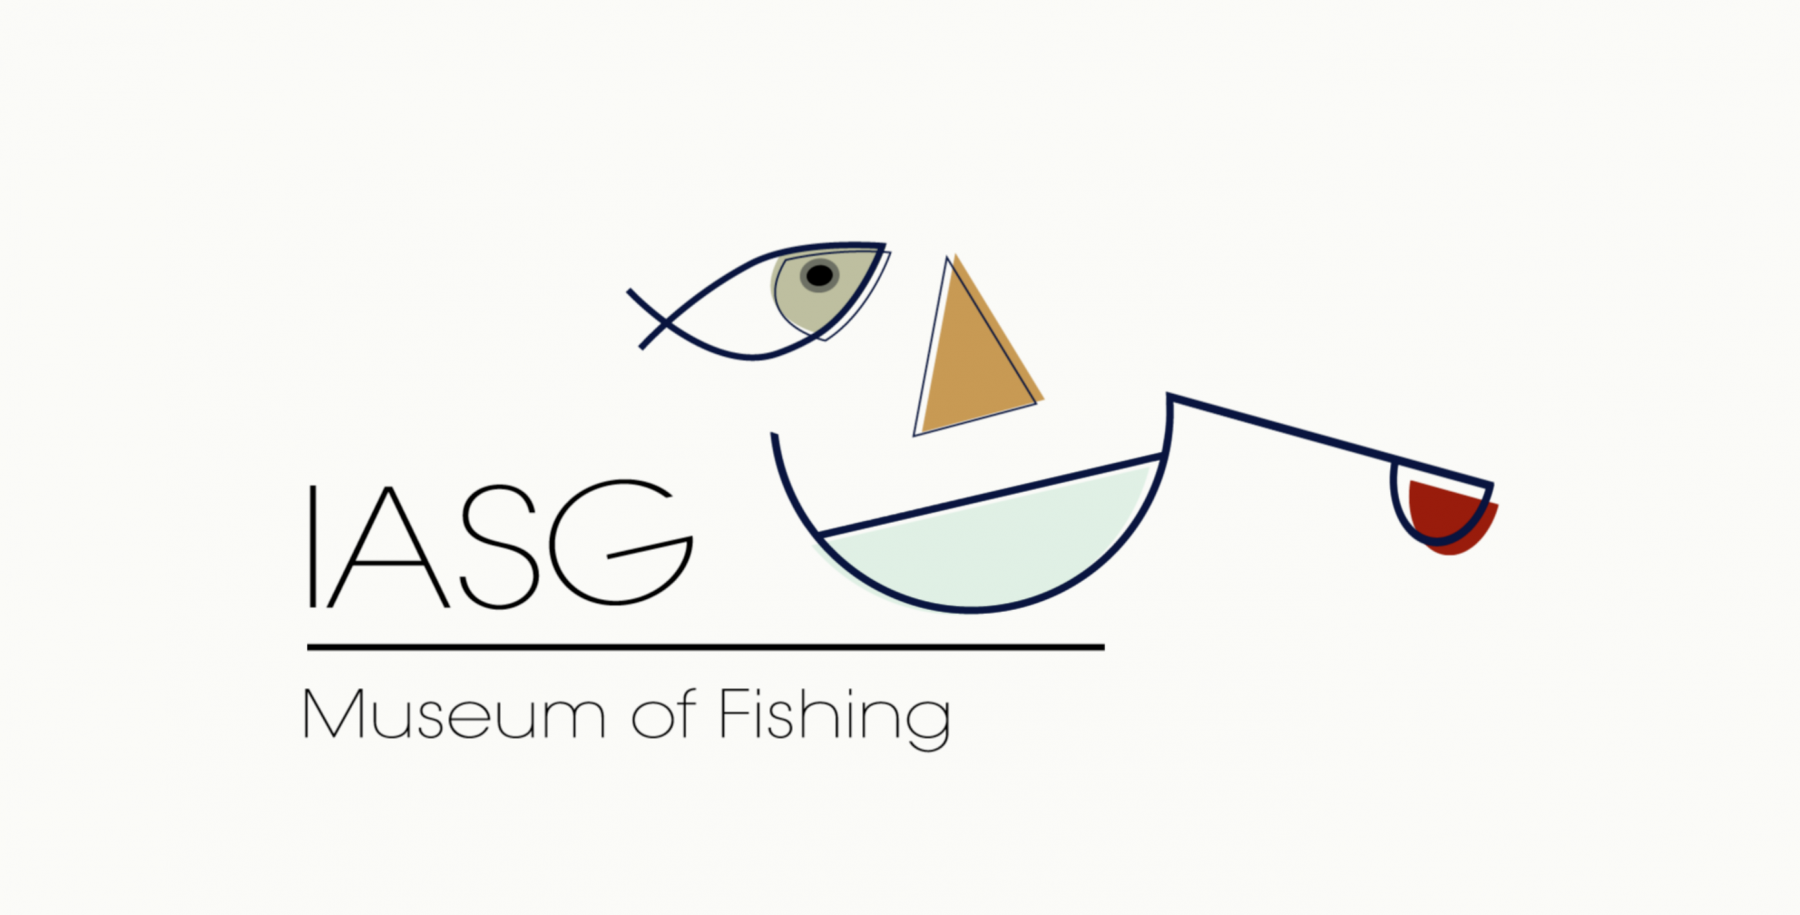 Click to view - IASG Logo animation